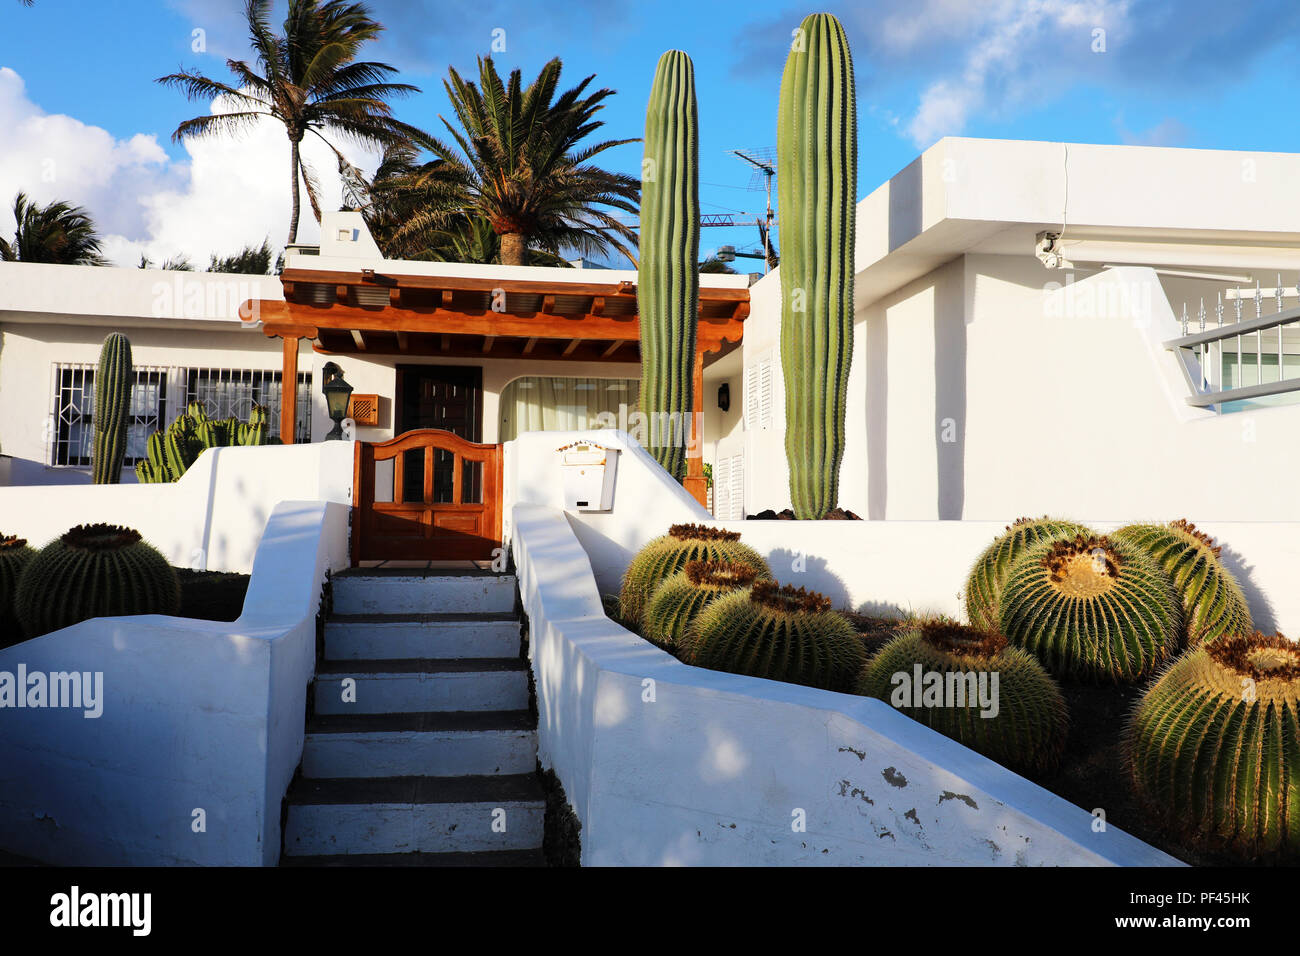 White modern house with cactus vegetation in lanzarote island spain summer vacation travel destination house rental concepts